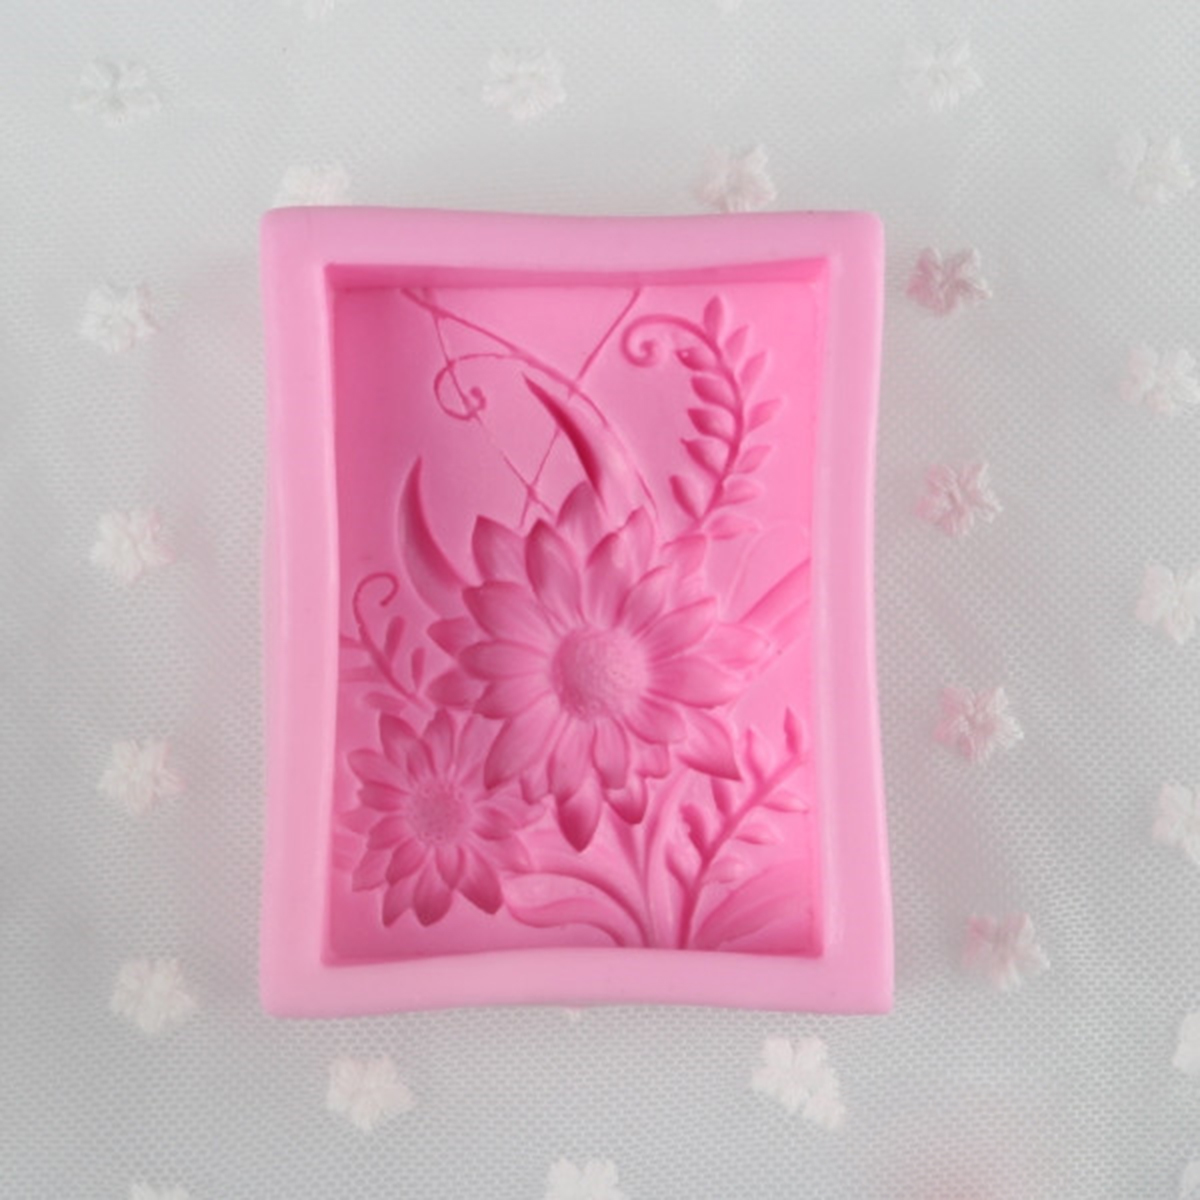 Silicone 3D Flexible Sunflower Candle Soap Making Mould Cake Handmade DIY Mold